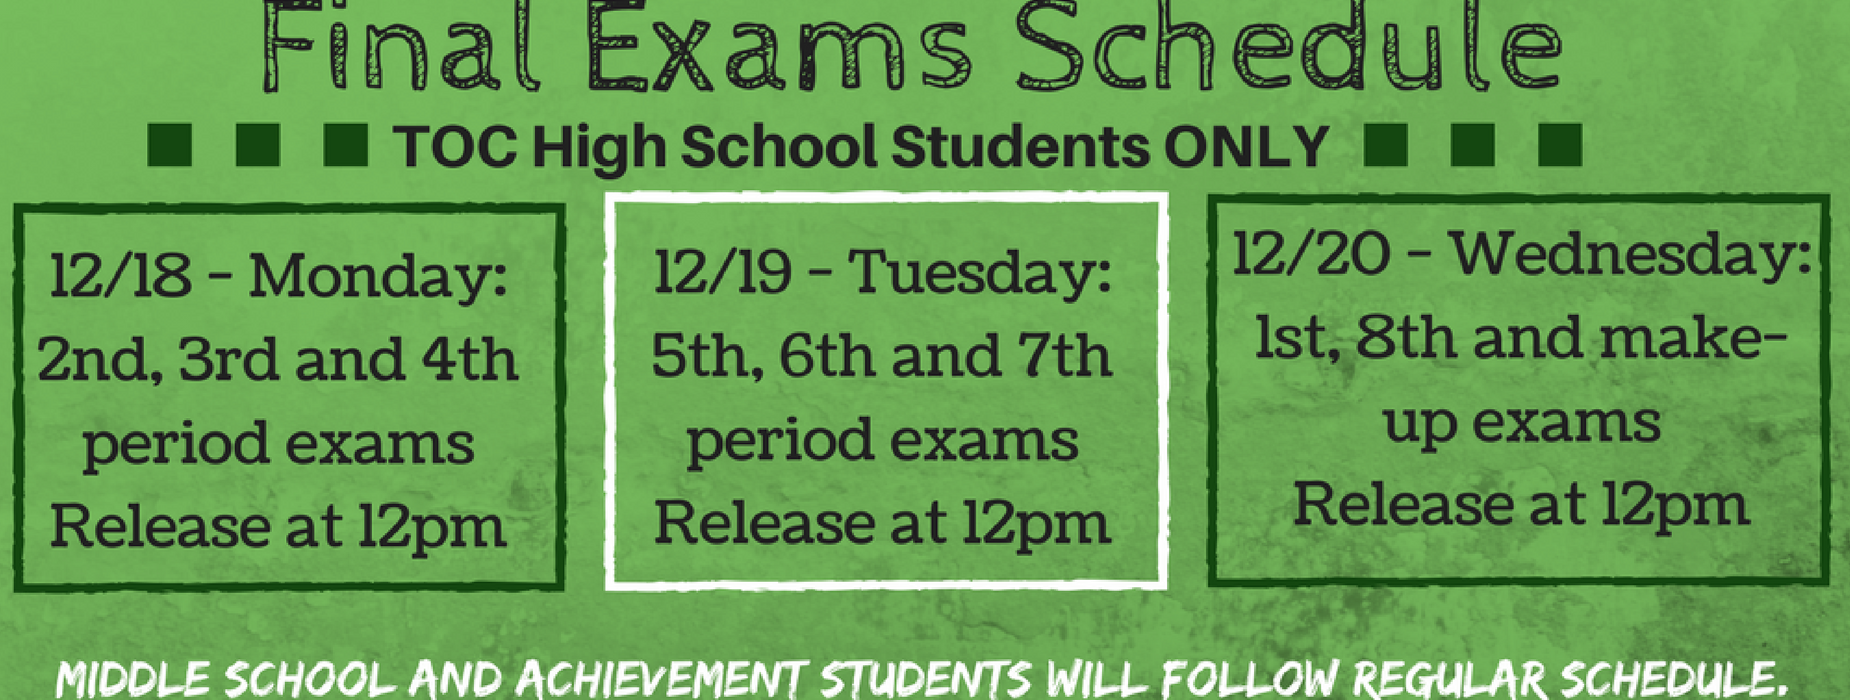 Final Exams - All High School students will release at 12pm. Middle School and Achievement Students will follow their regular schedule